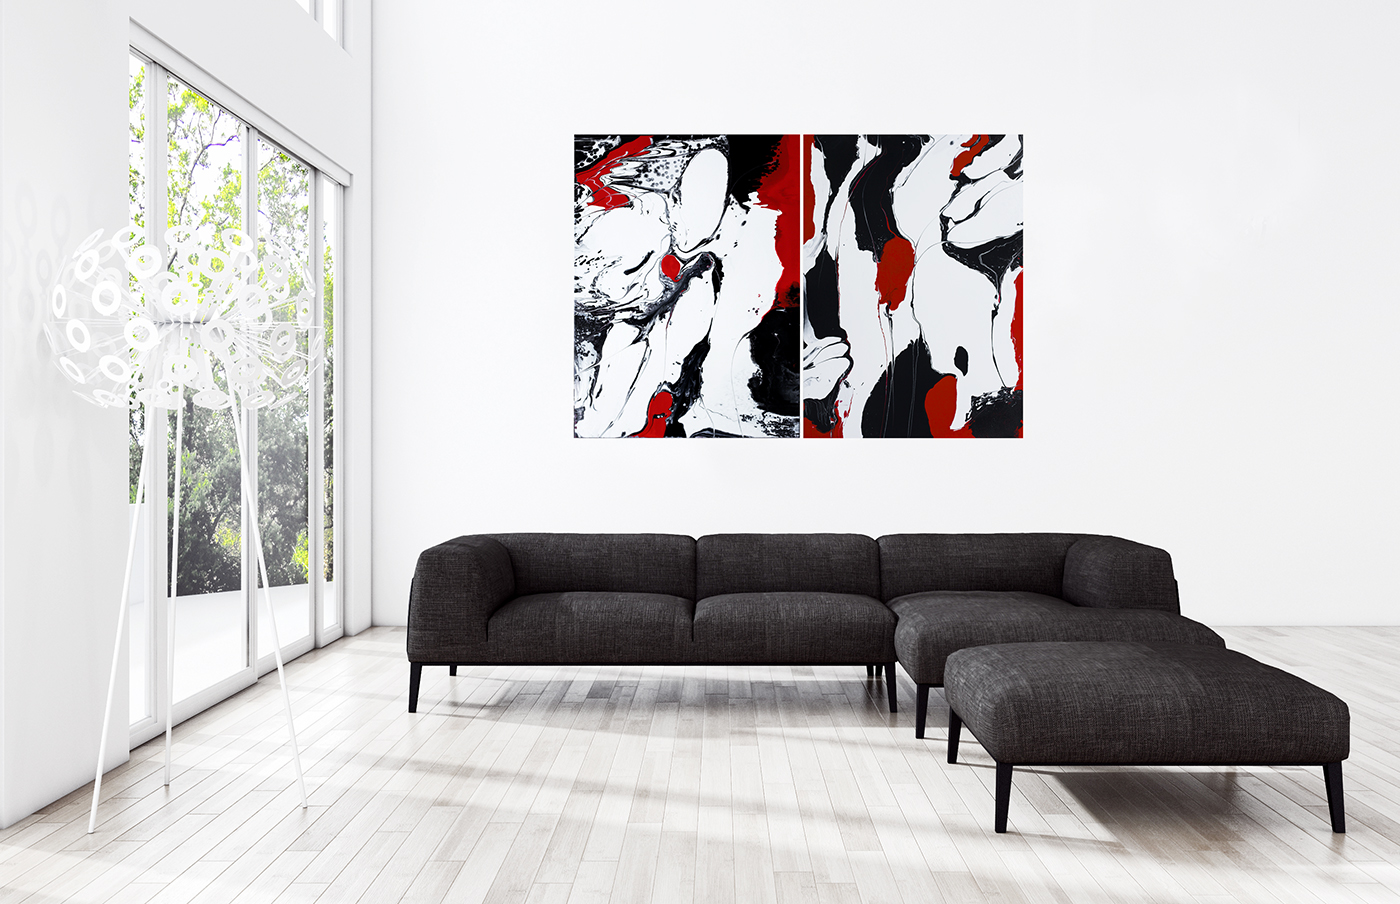 red black on white 2 minimal abstract paintings by artist svein